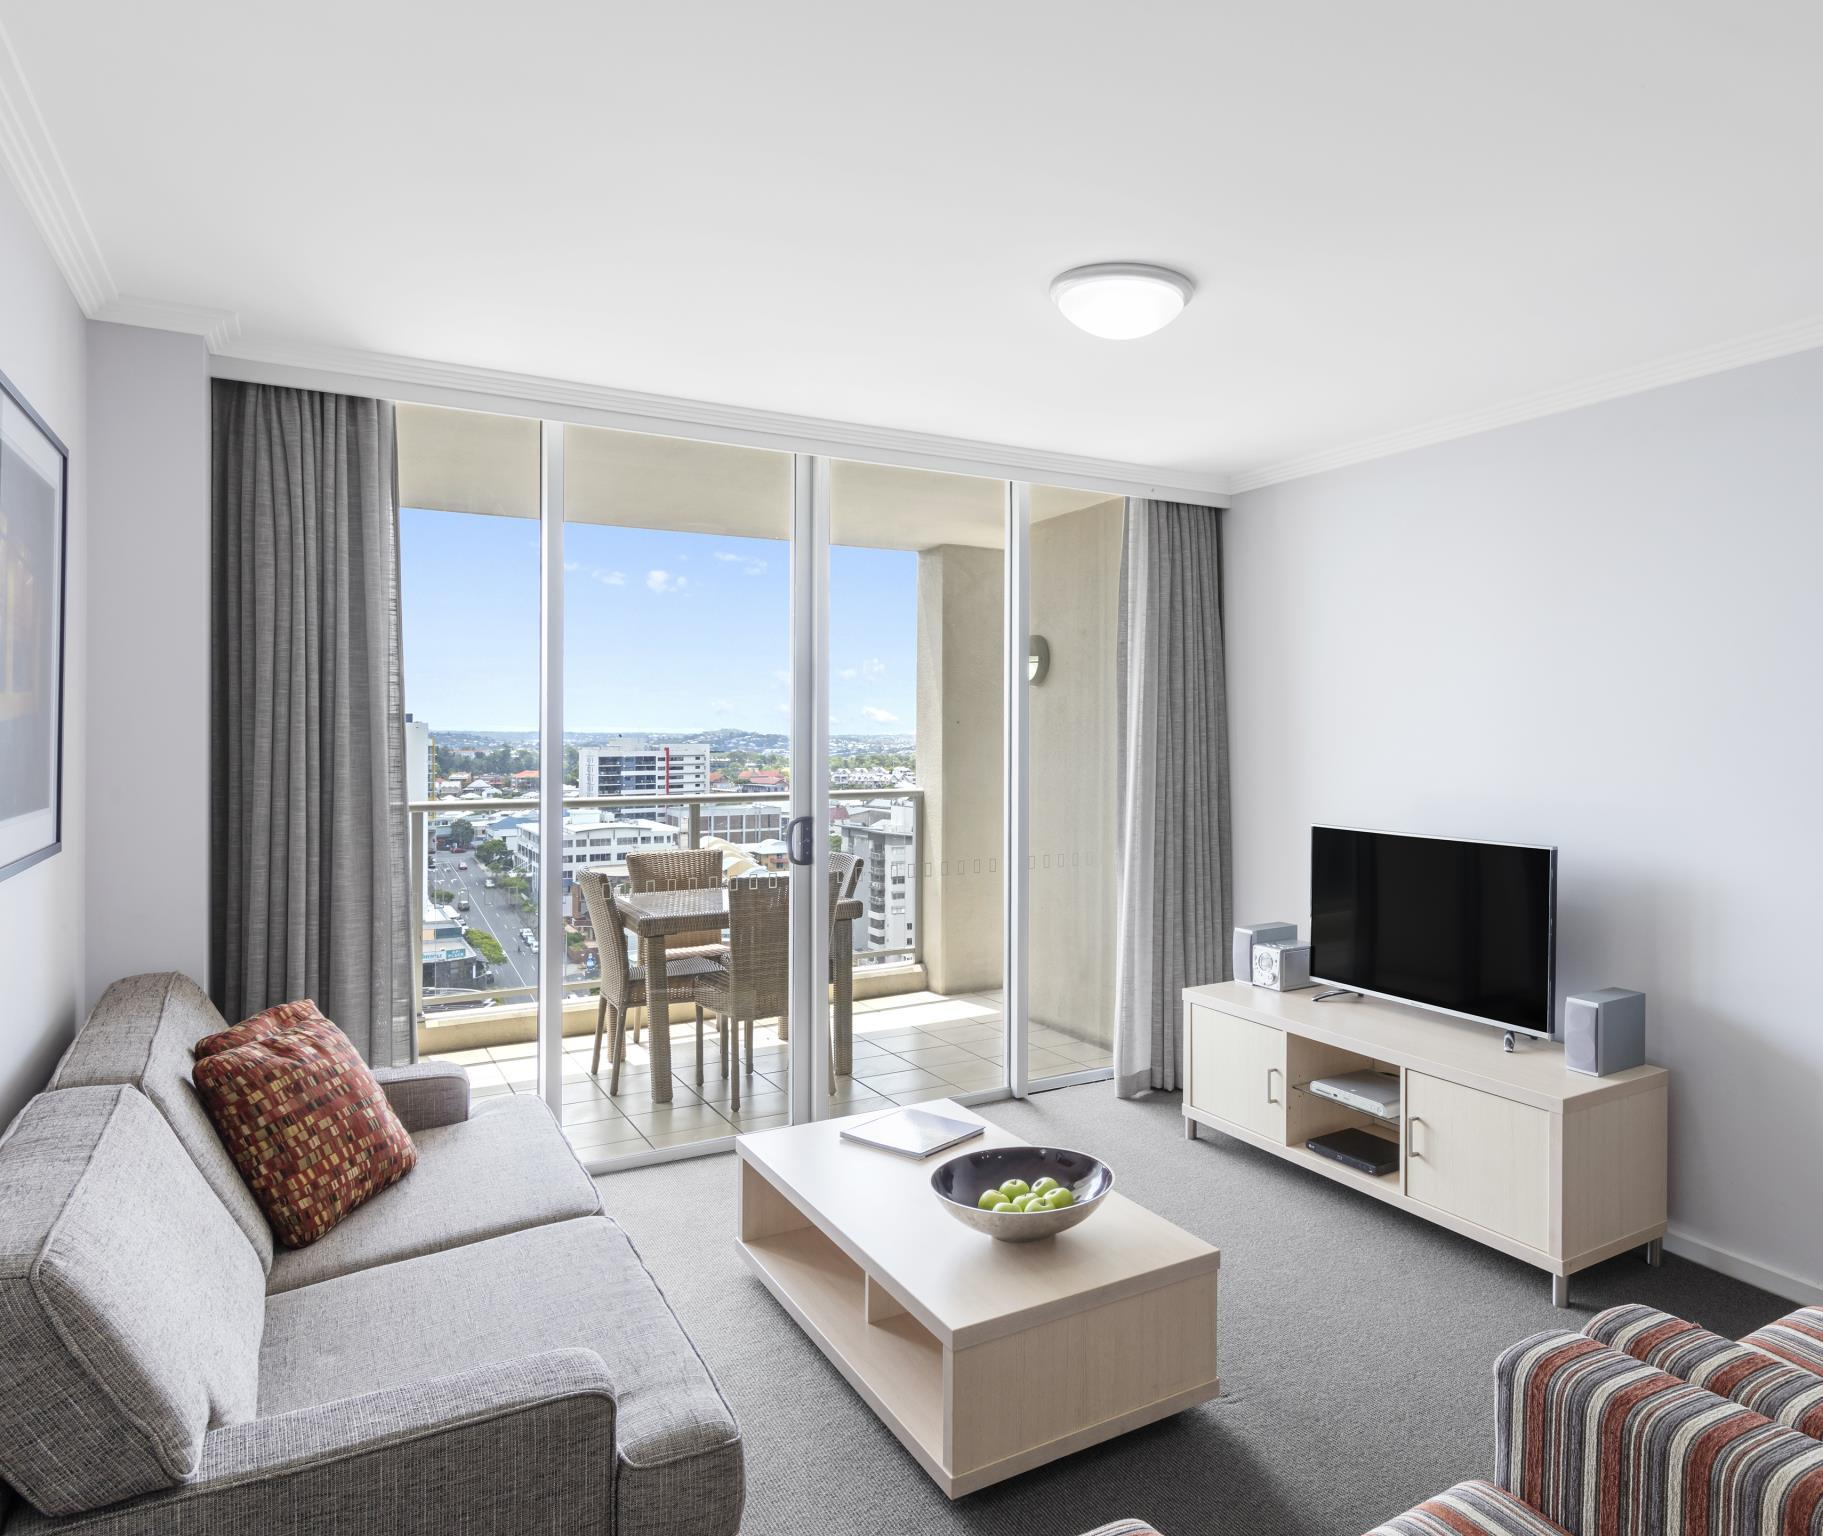 Best price on oaks lexicon apartments in brisbane reviews for Cost to clean 2 bedroom apartment